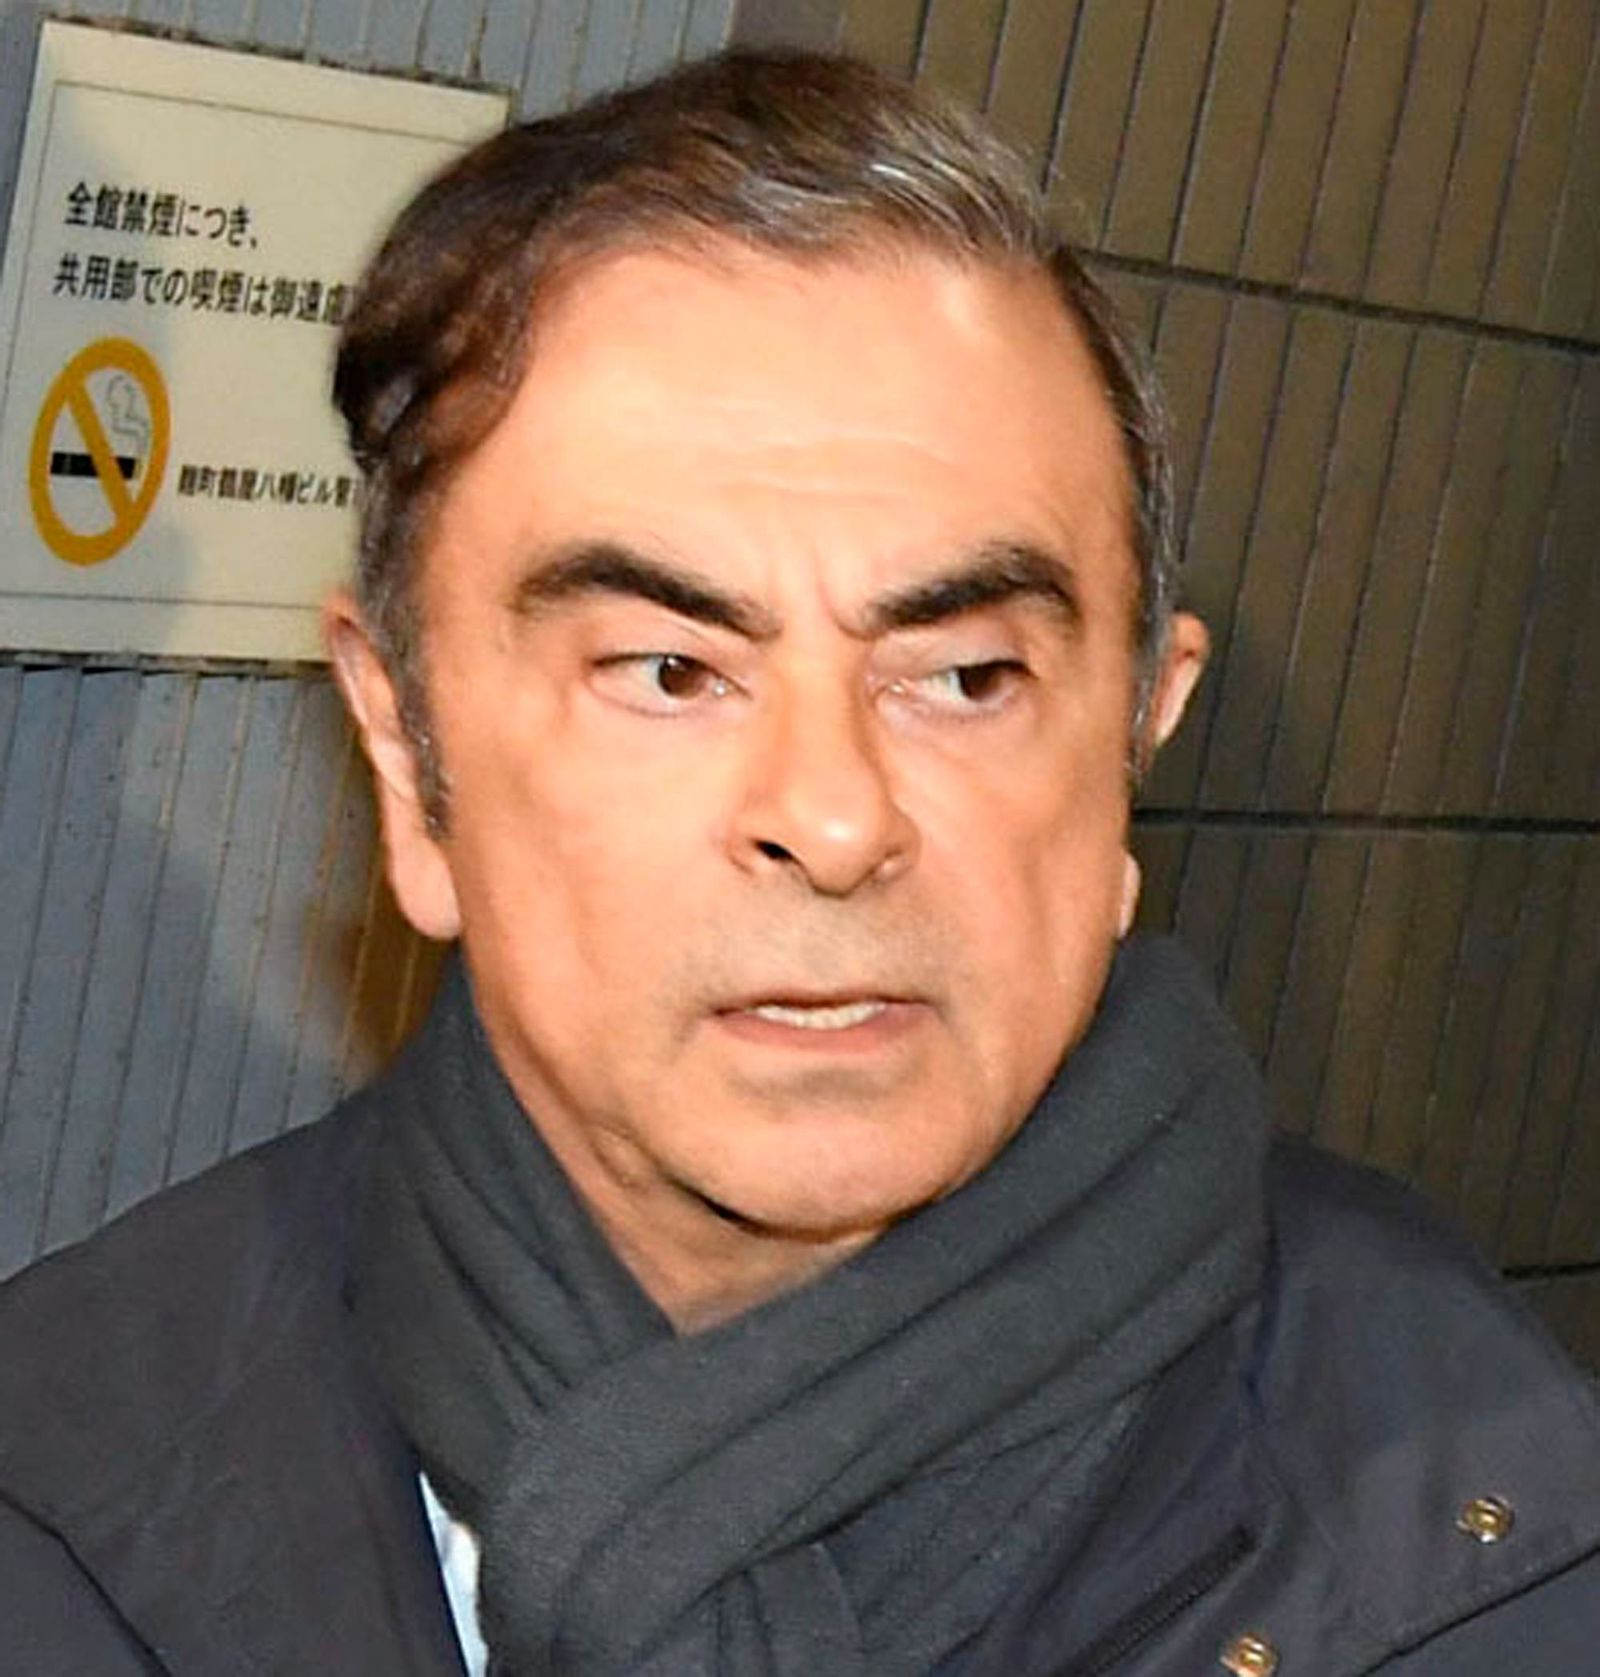 In this undated photo, former Nissan Chairman Carlos Ghosn leaves his lawyer's office in Tokyo. (Kyodo News via AP)